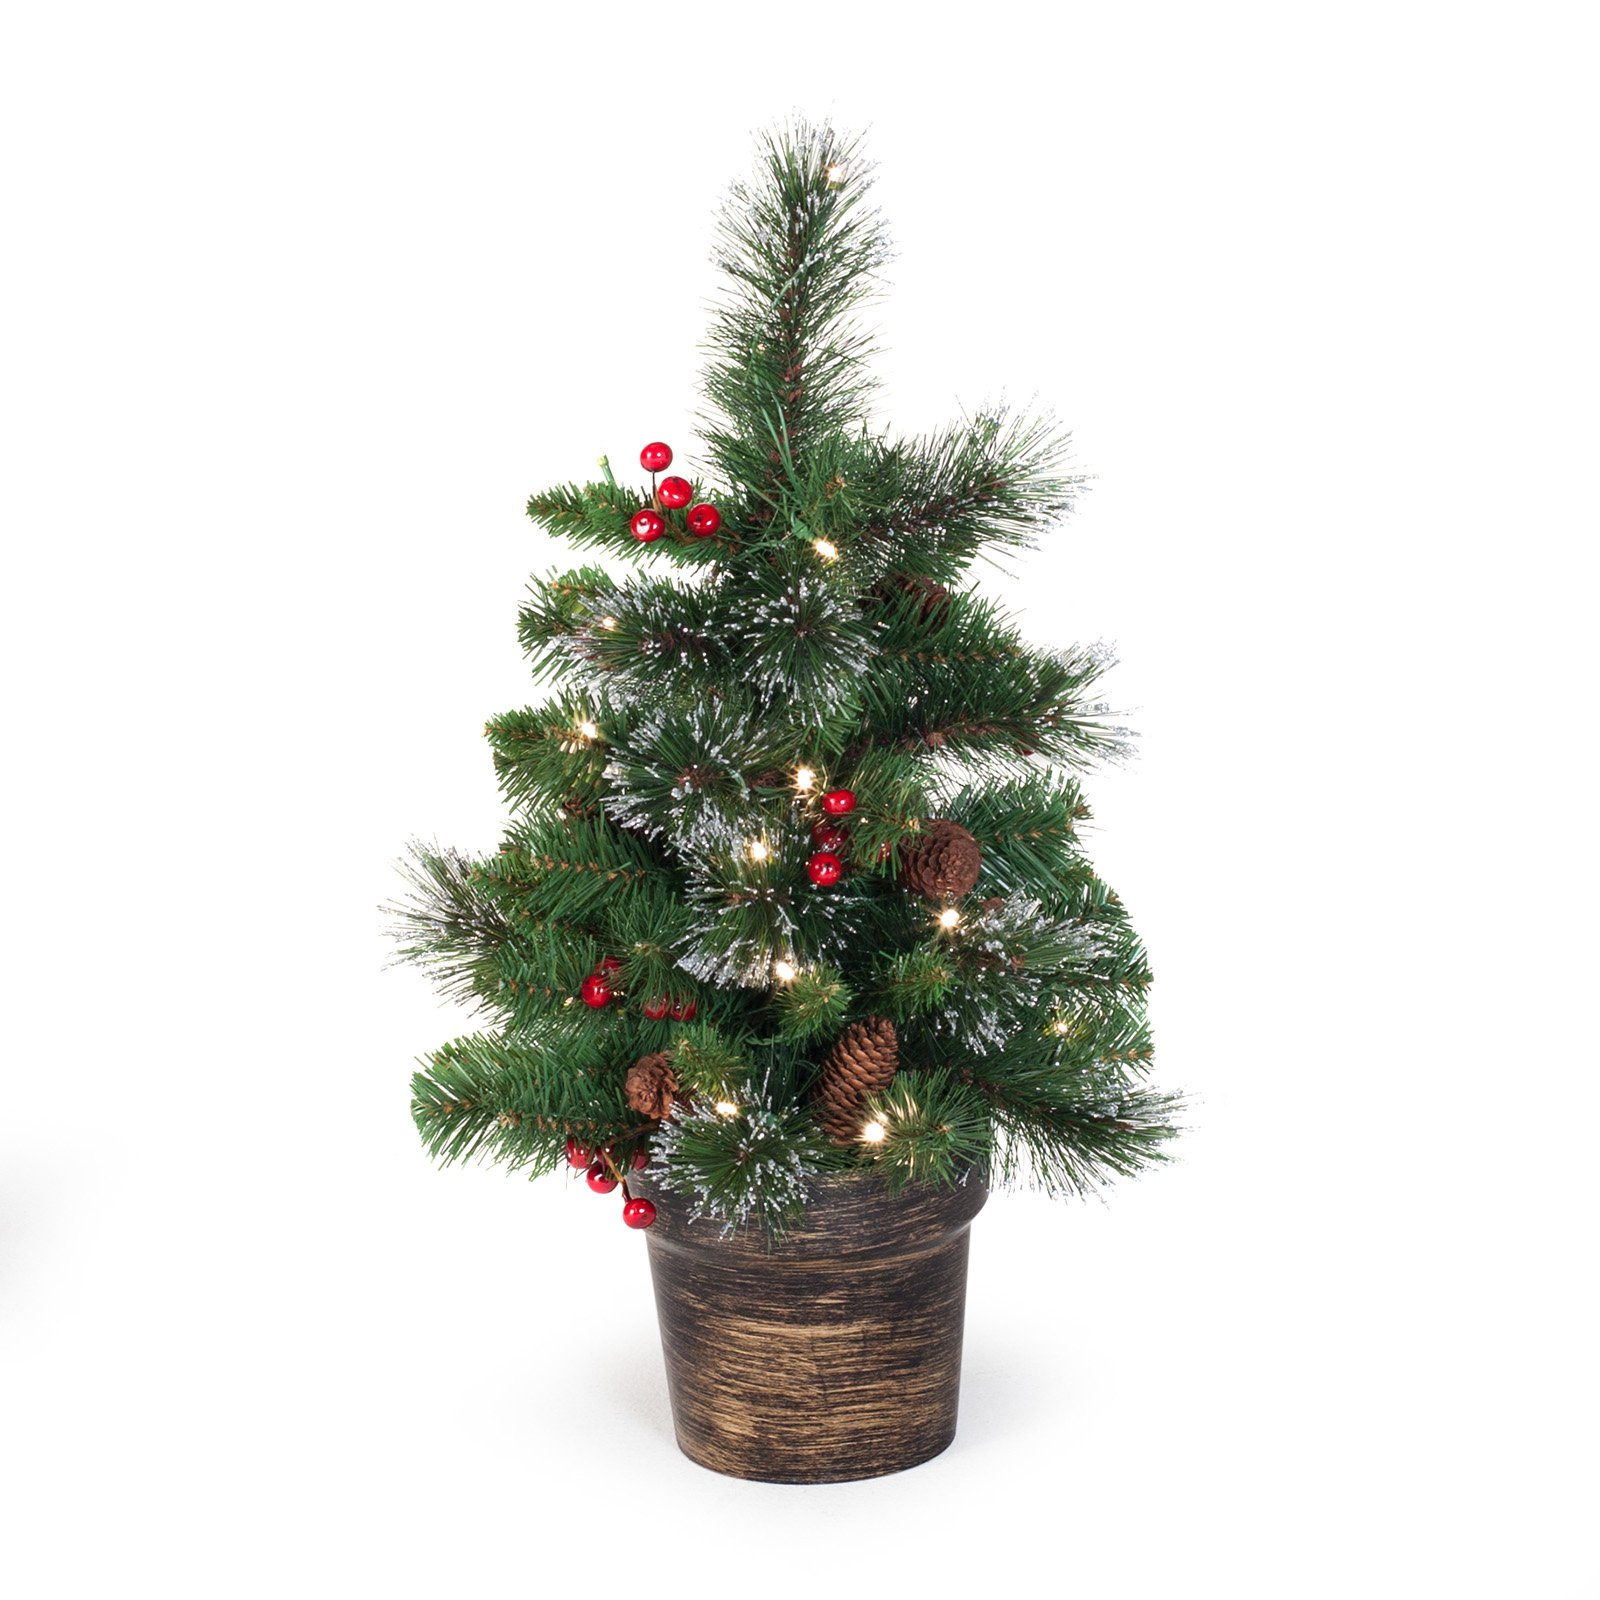 National Tree Pre-Lit 2' Crestwood Spruce Small Artificial Christmas Tree with Silver Bristle, Cones, Red Berries and Glitter in a Plastic Bronze Pot with 35 Battery Operated Clear LED Lights